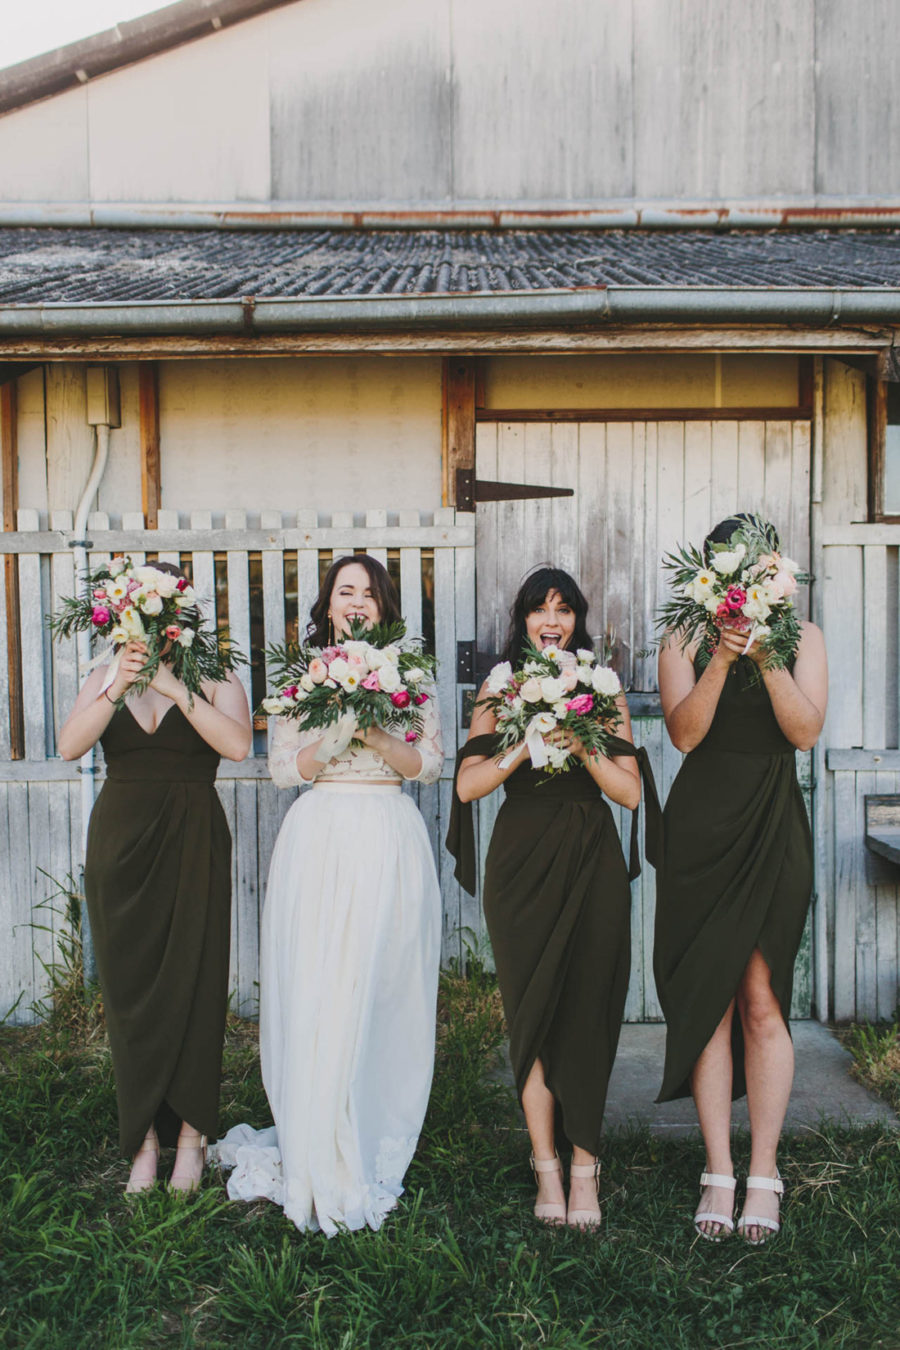 khaki bridesmaid dresses